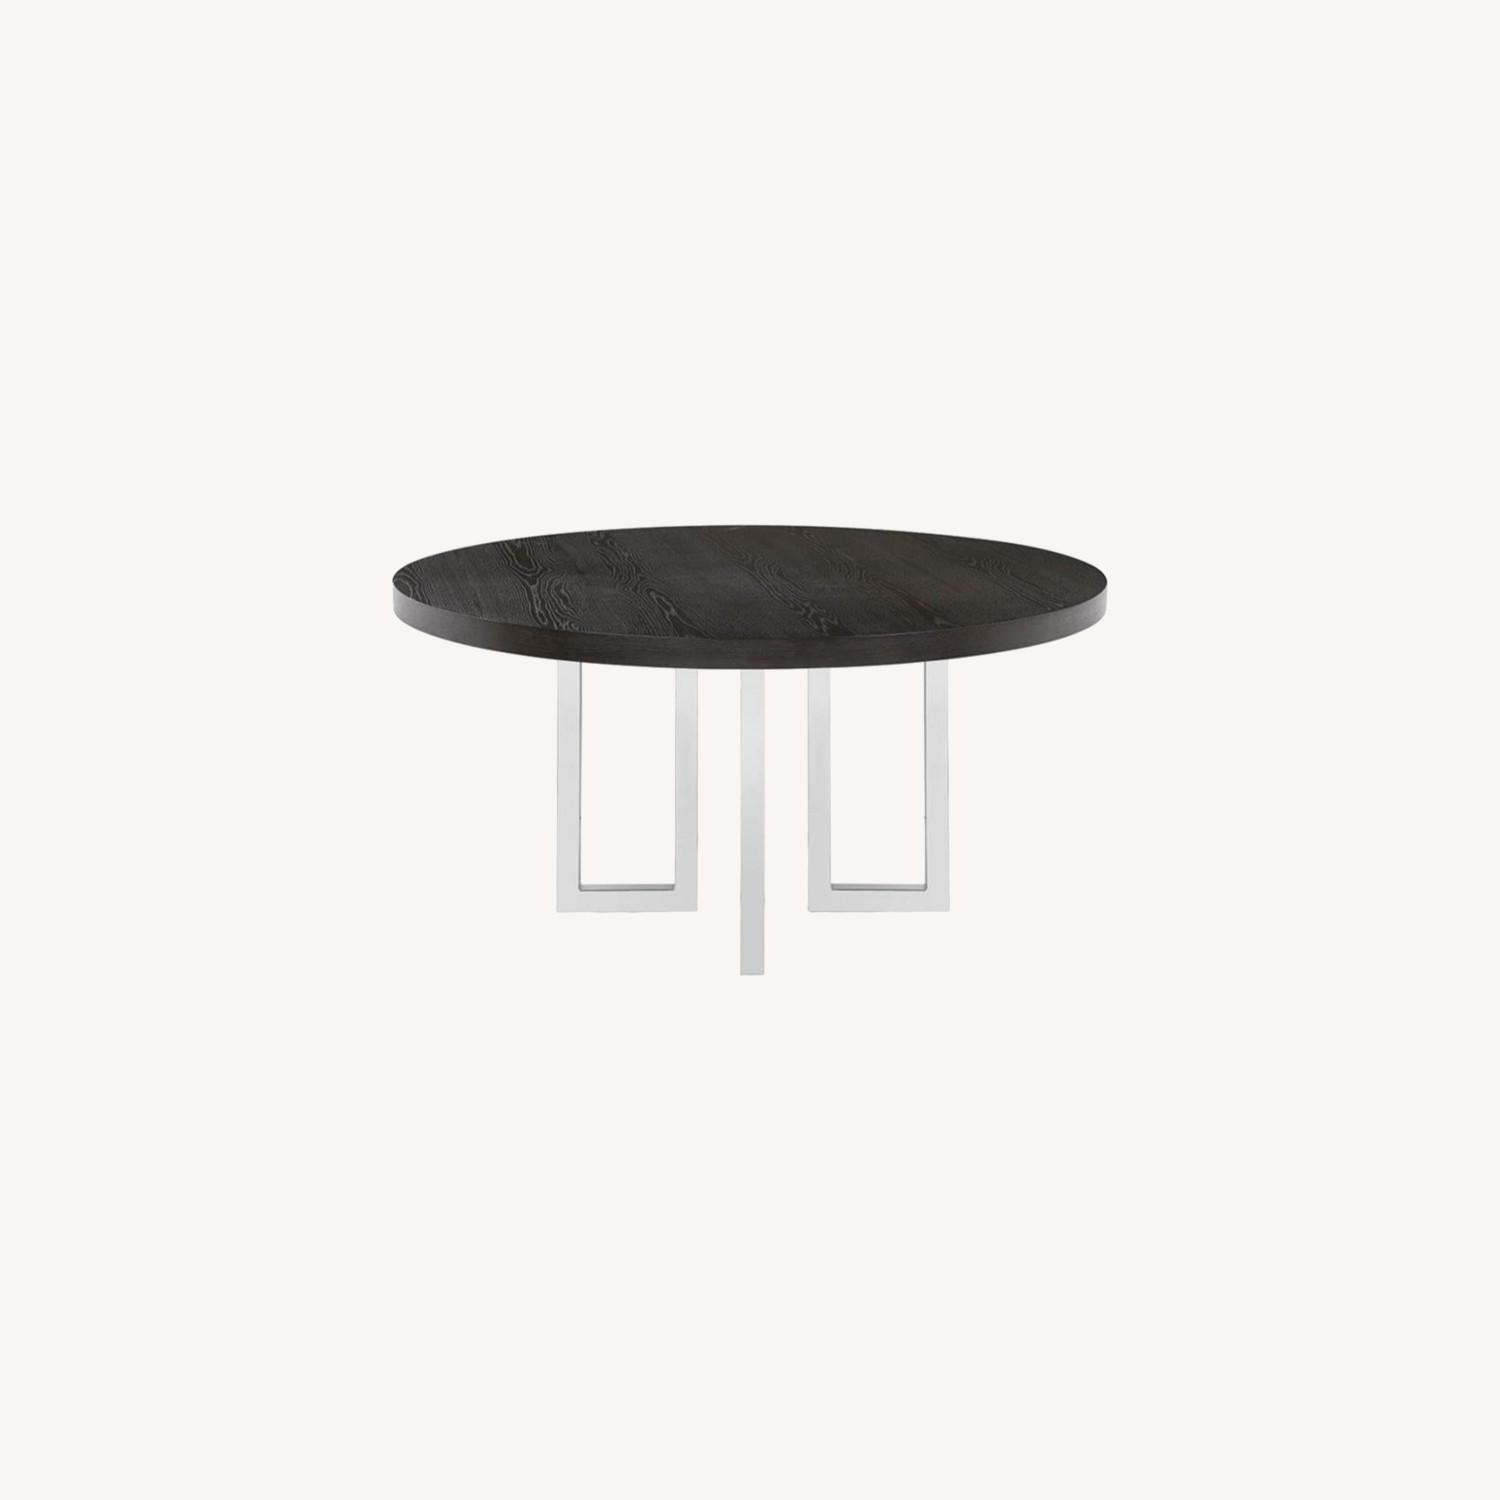 Modern Round Dining Table In Graphite Wood Finish - image-3